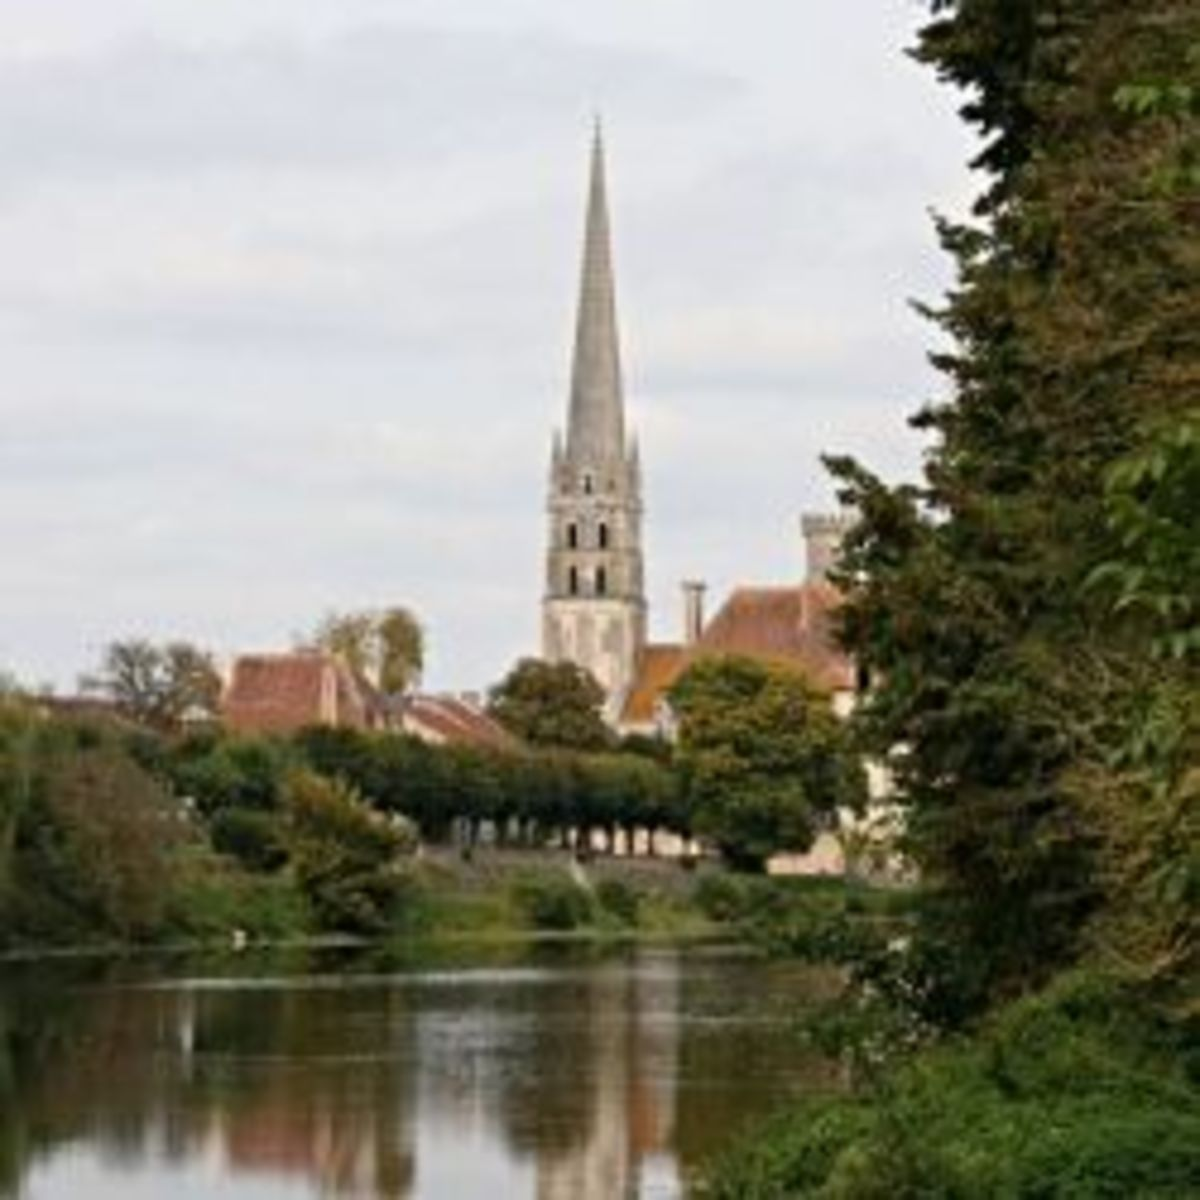 The Abbey Church of St Savin sur Gartempe viewed from across the river